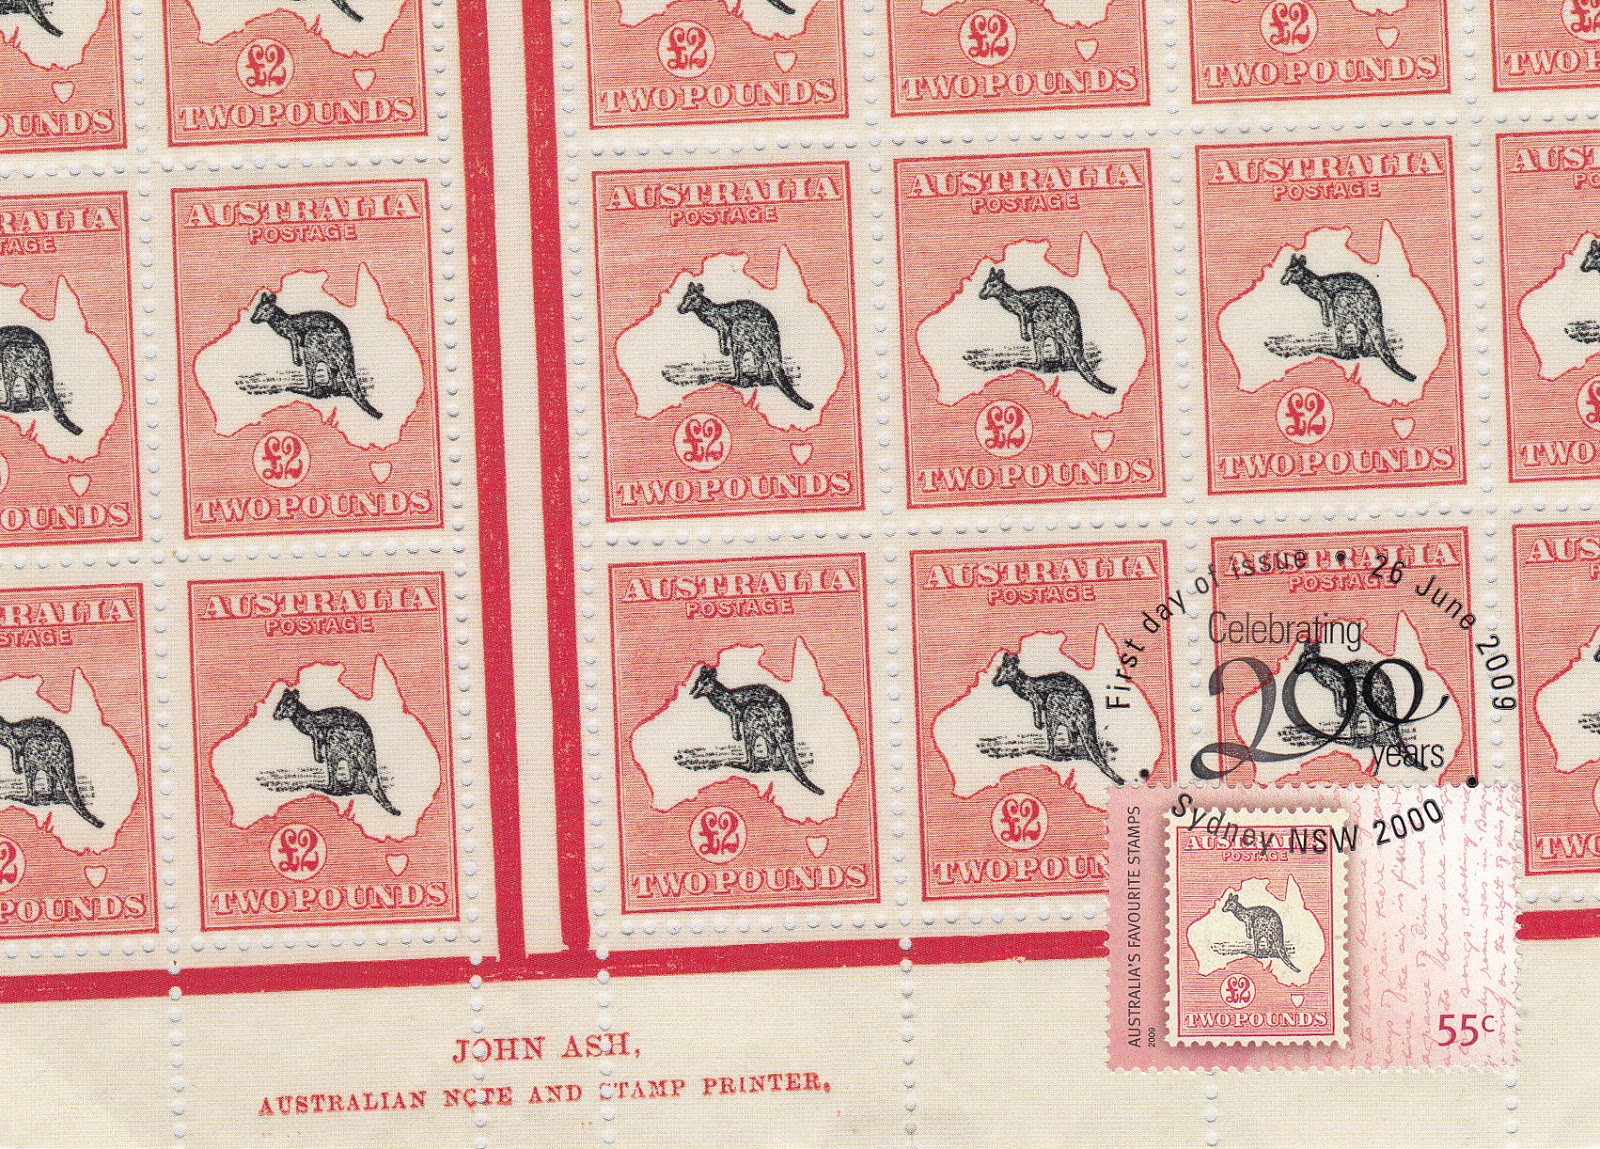 Map Of Australia 26th Parallel.My Postcard And Stamp Week Australia Kangaroo And Map Stamps